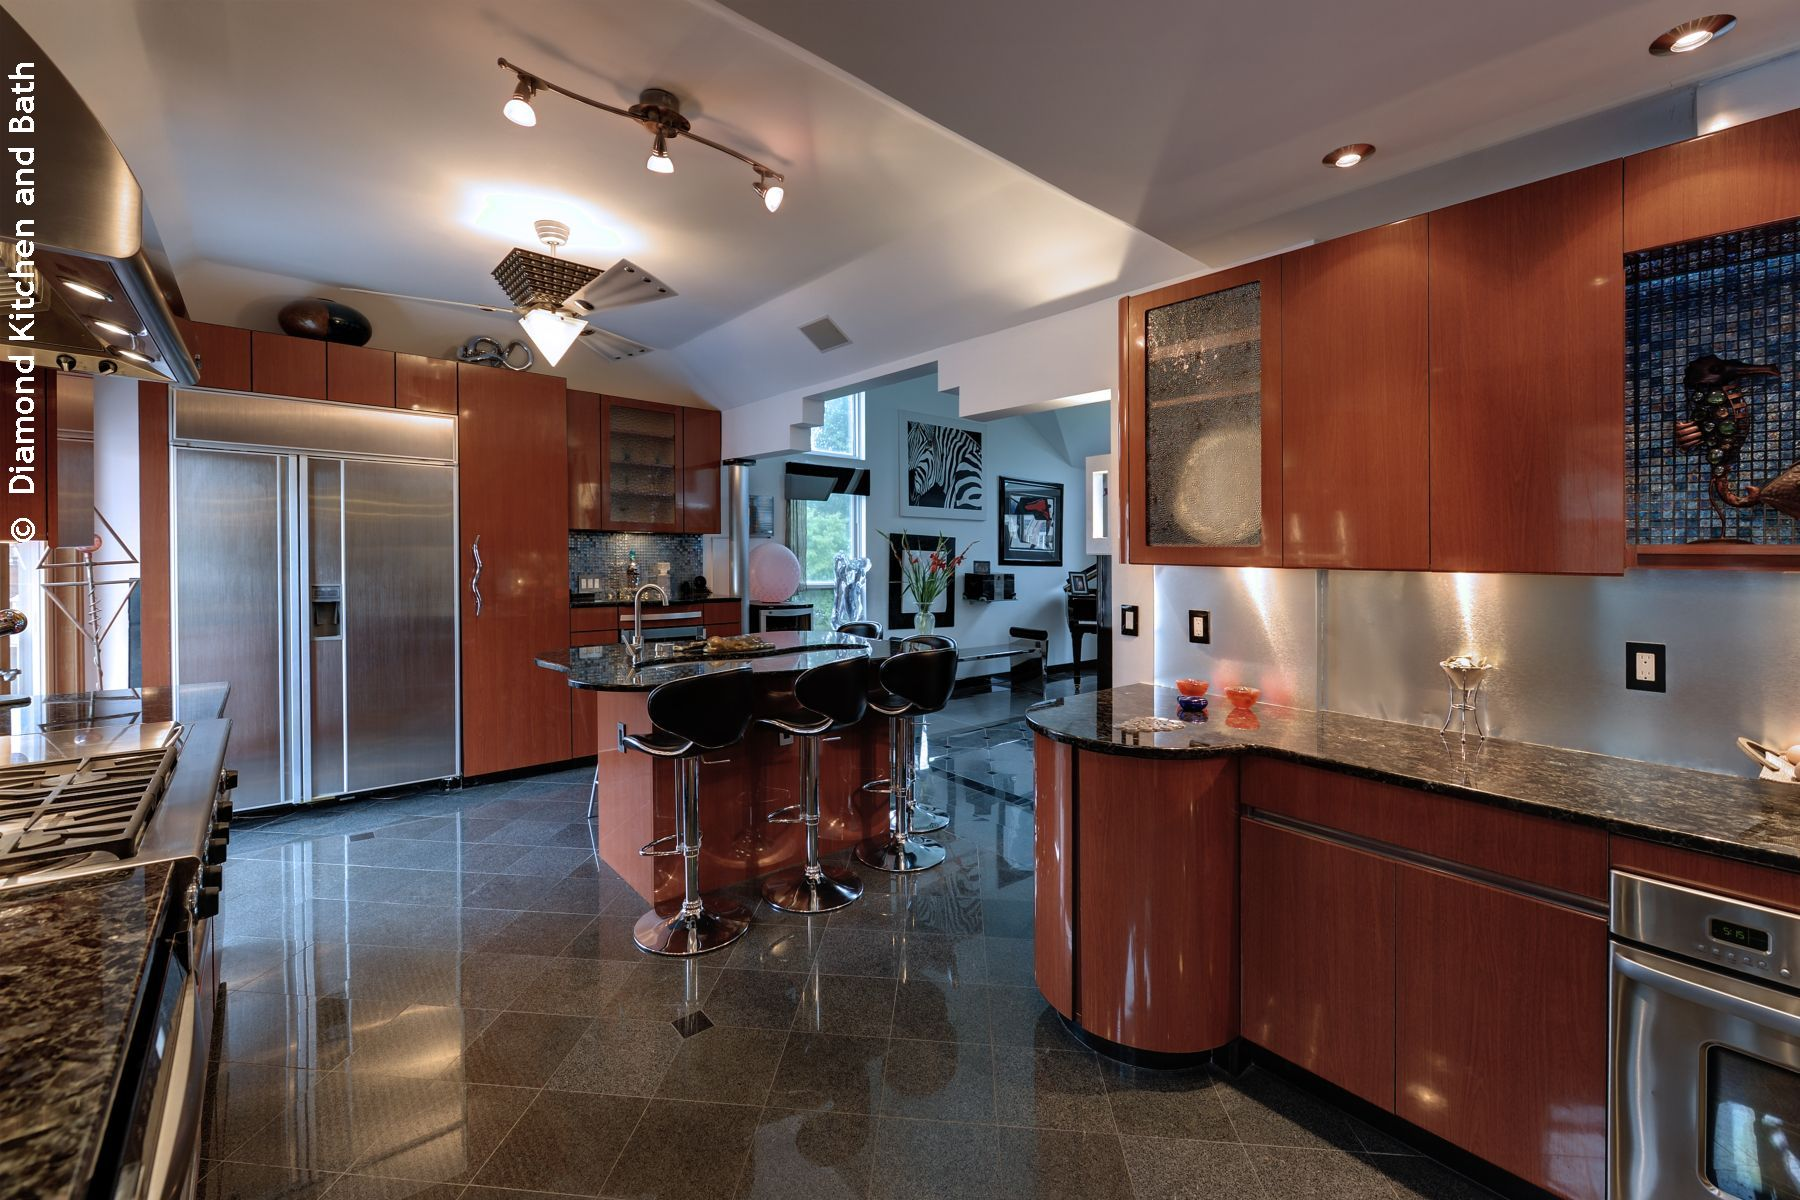 Kitchen Remodeling Virtual Tour in Cinnaminson, NJ